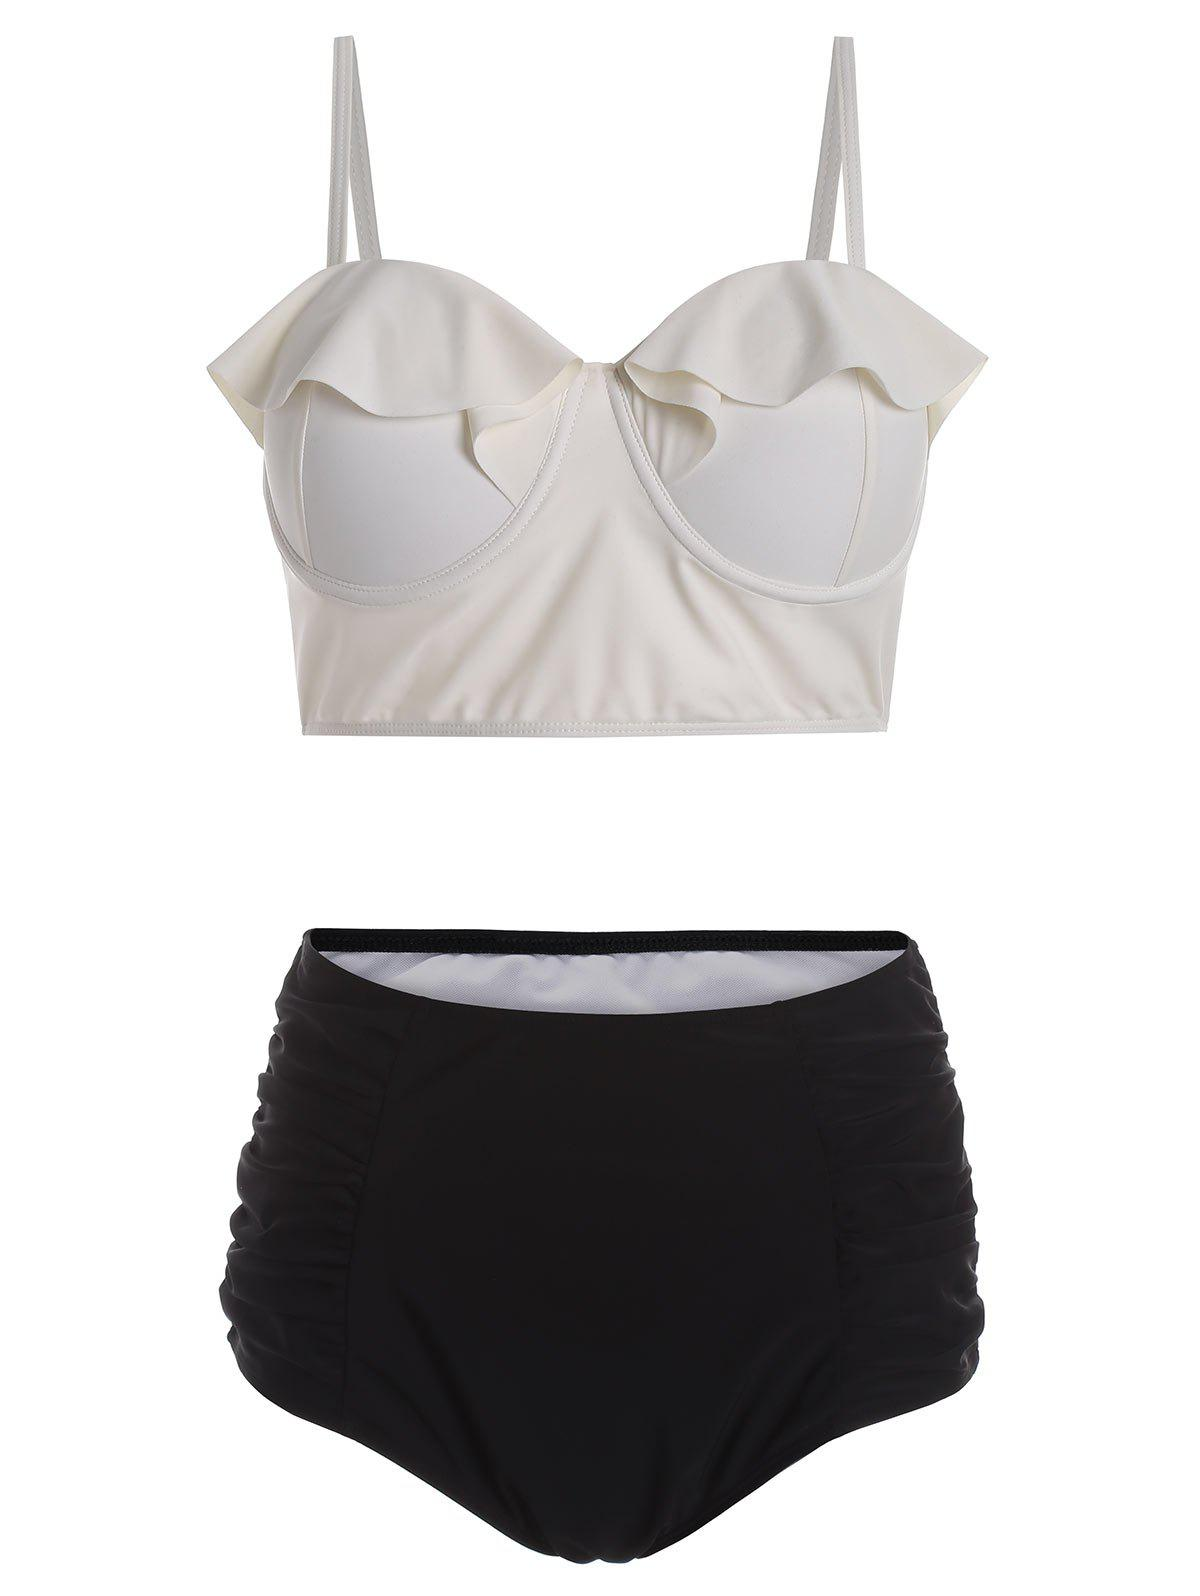 Discount Plus Size Bustier Bikini Top and High Waisted Bottoms